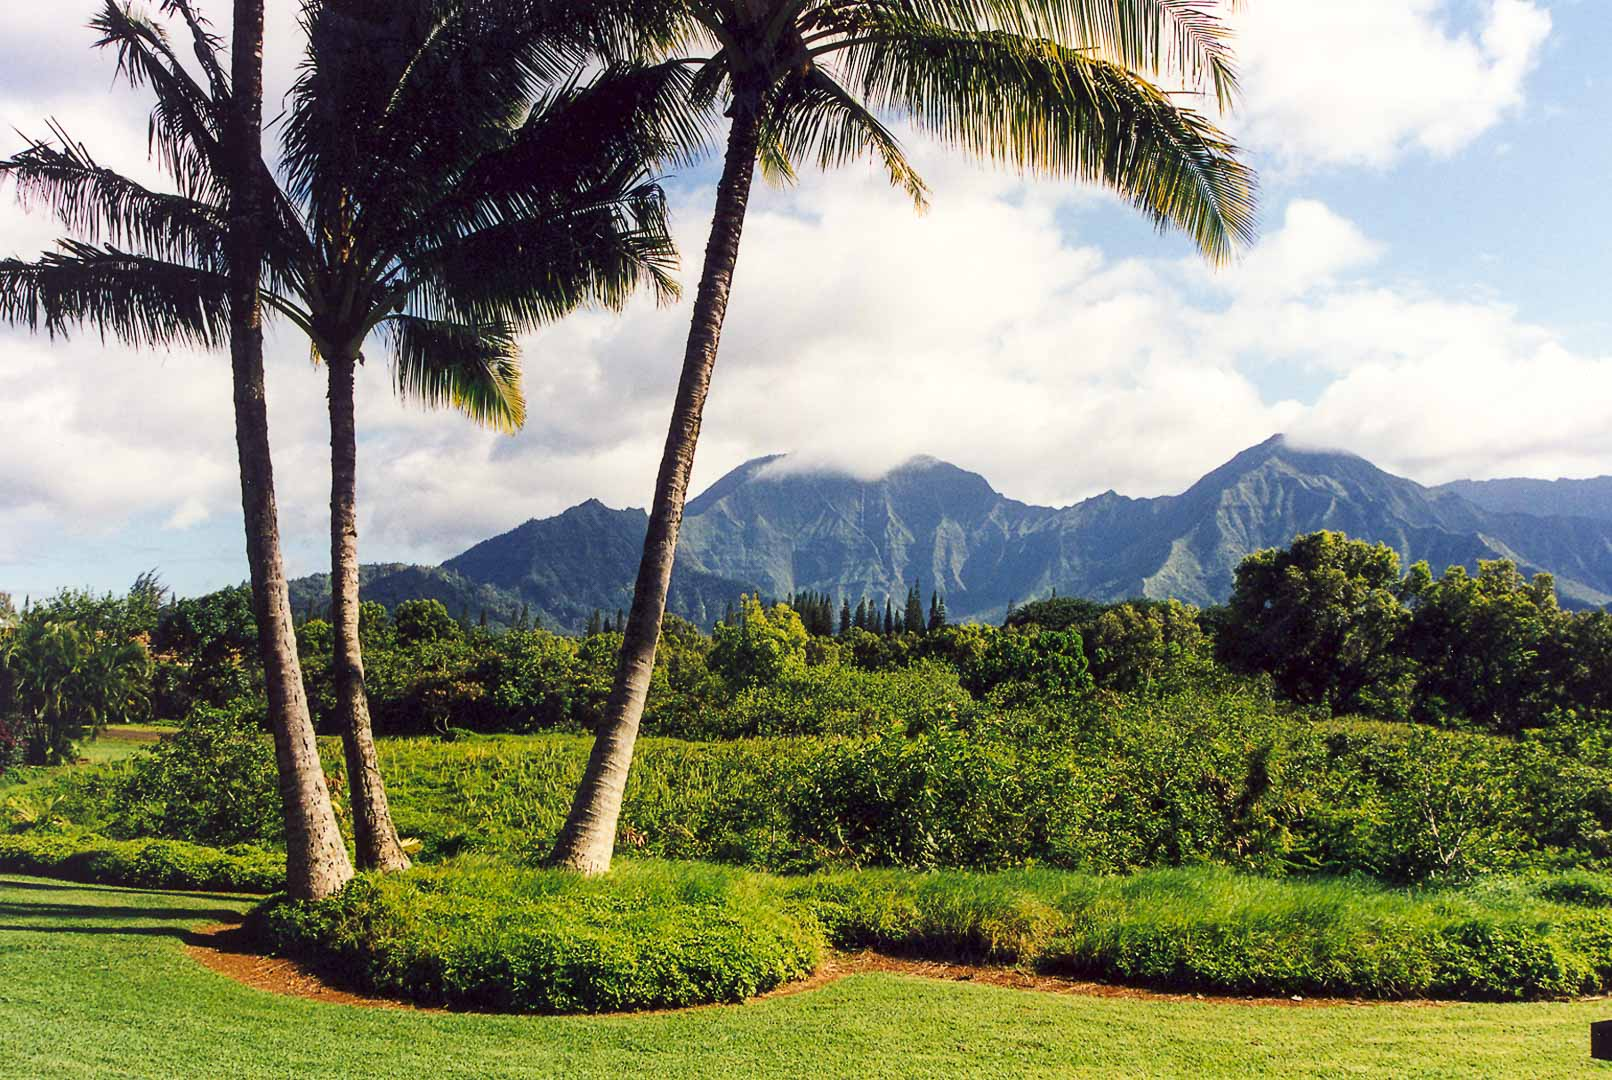 alii-kai-resort-19